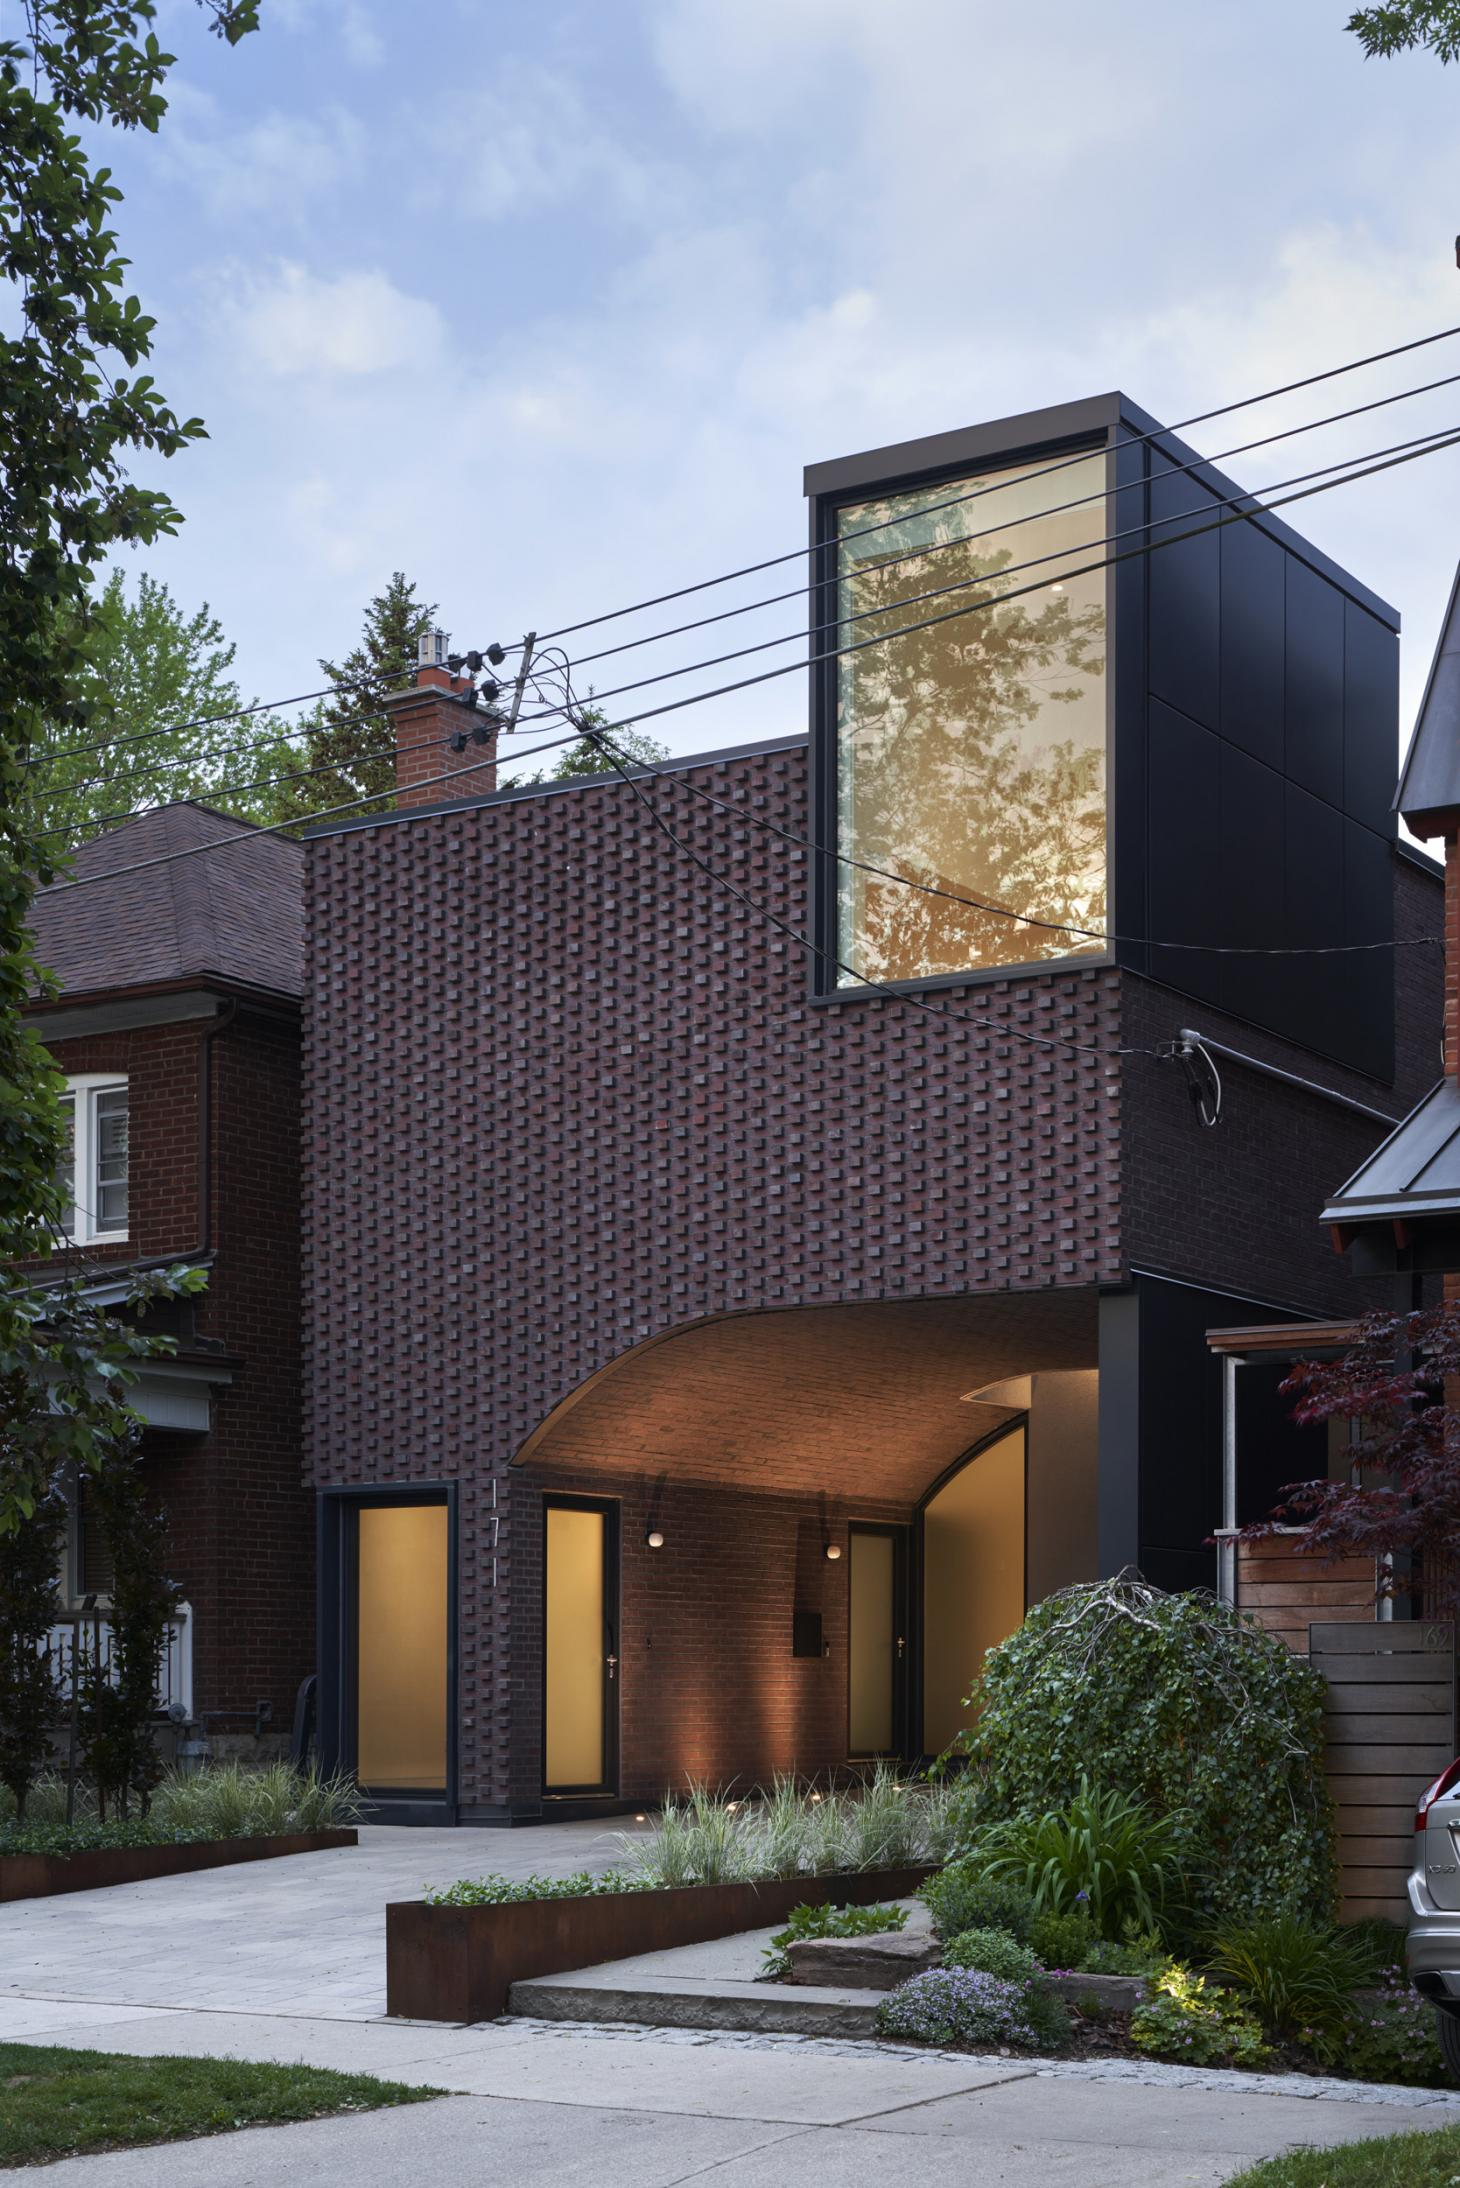 The brick facade fits into the existing streetscape